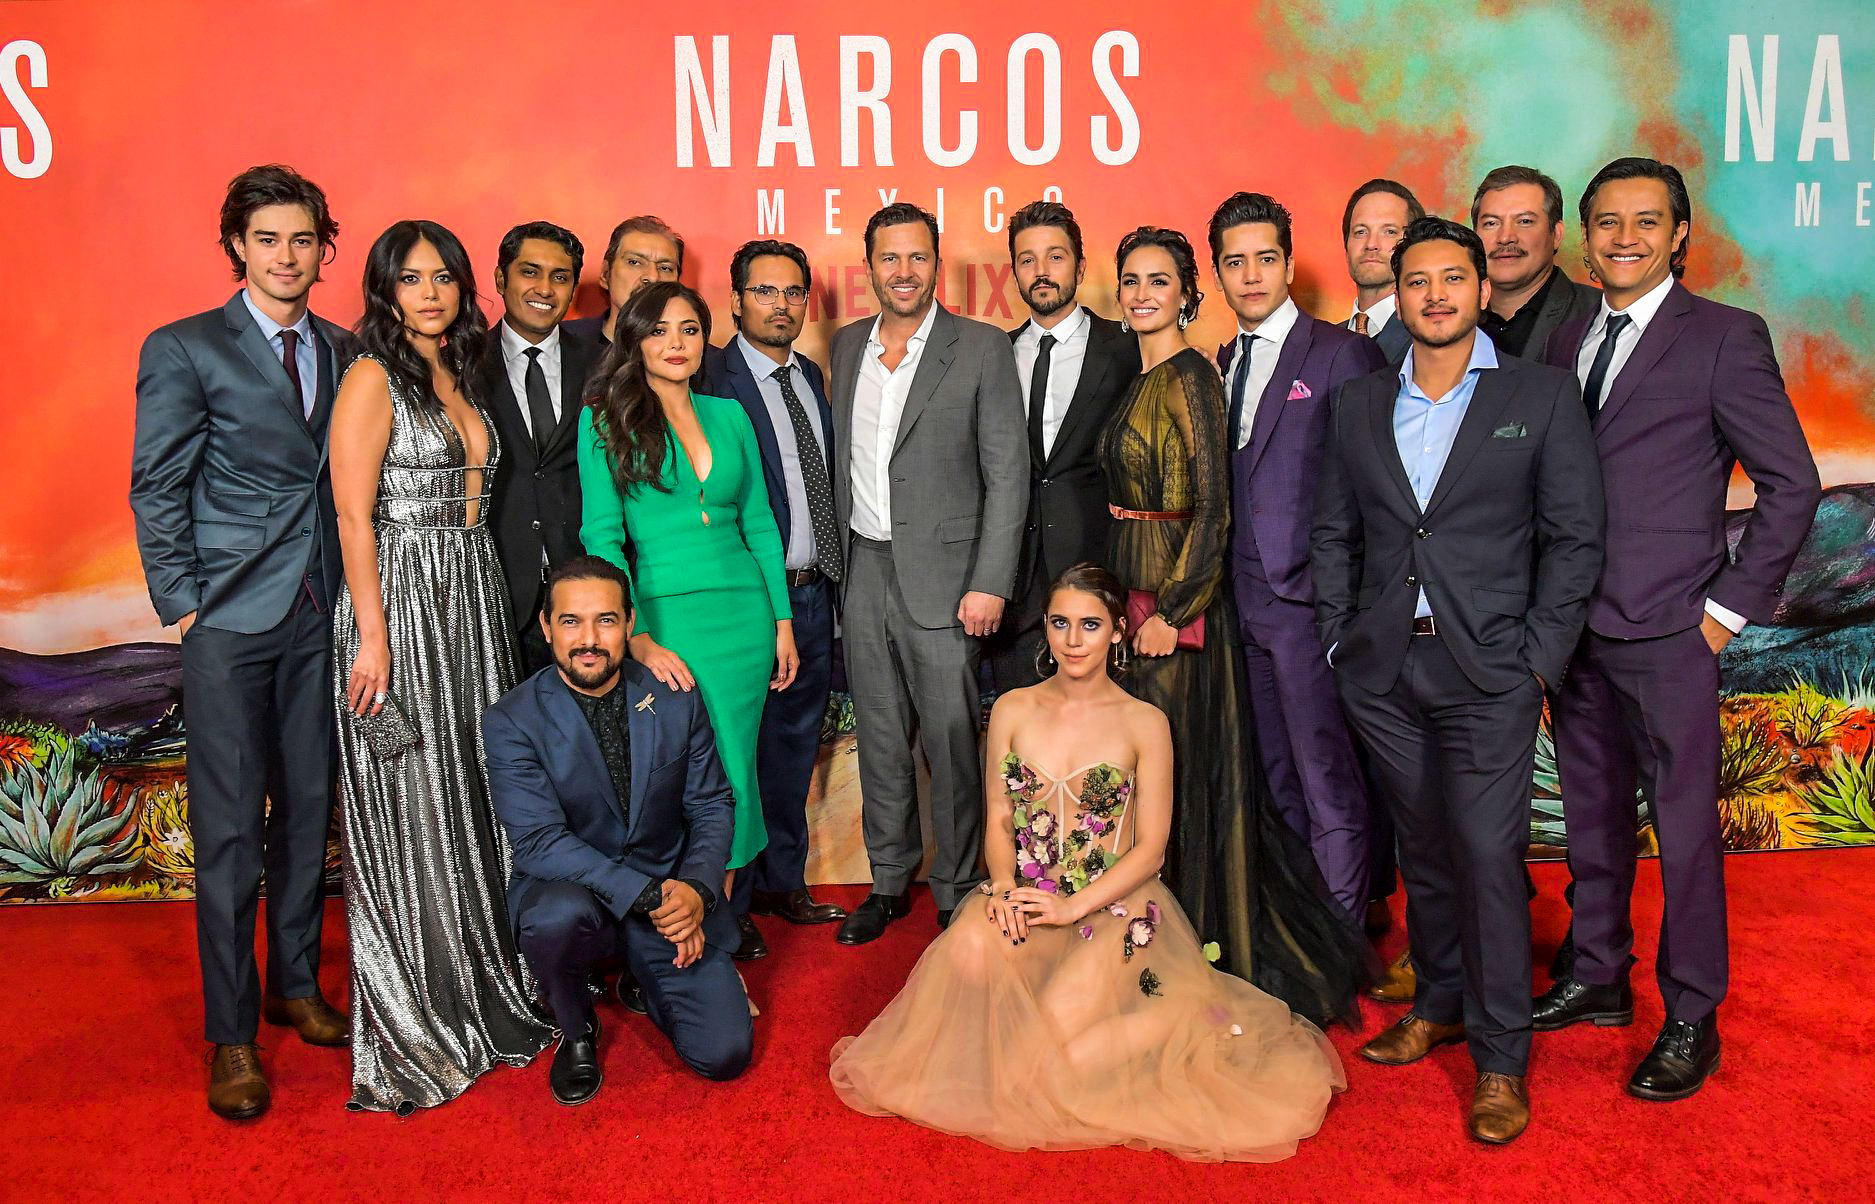 NARCOS CAST RED CARPET.jpg